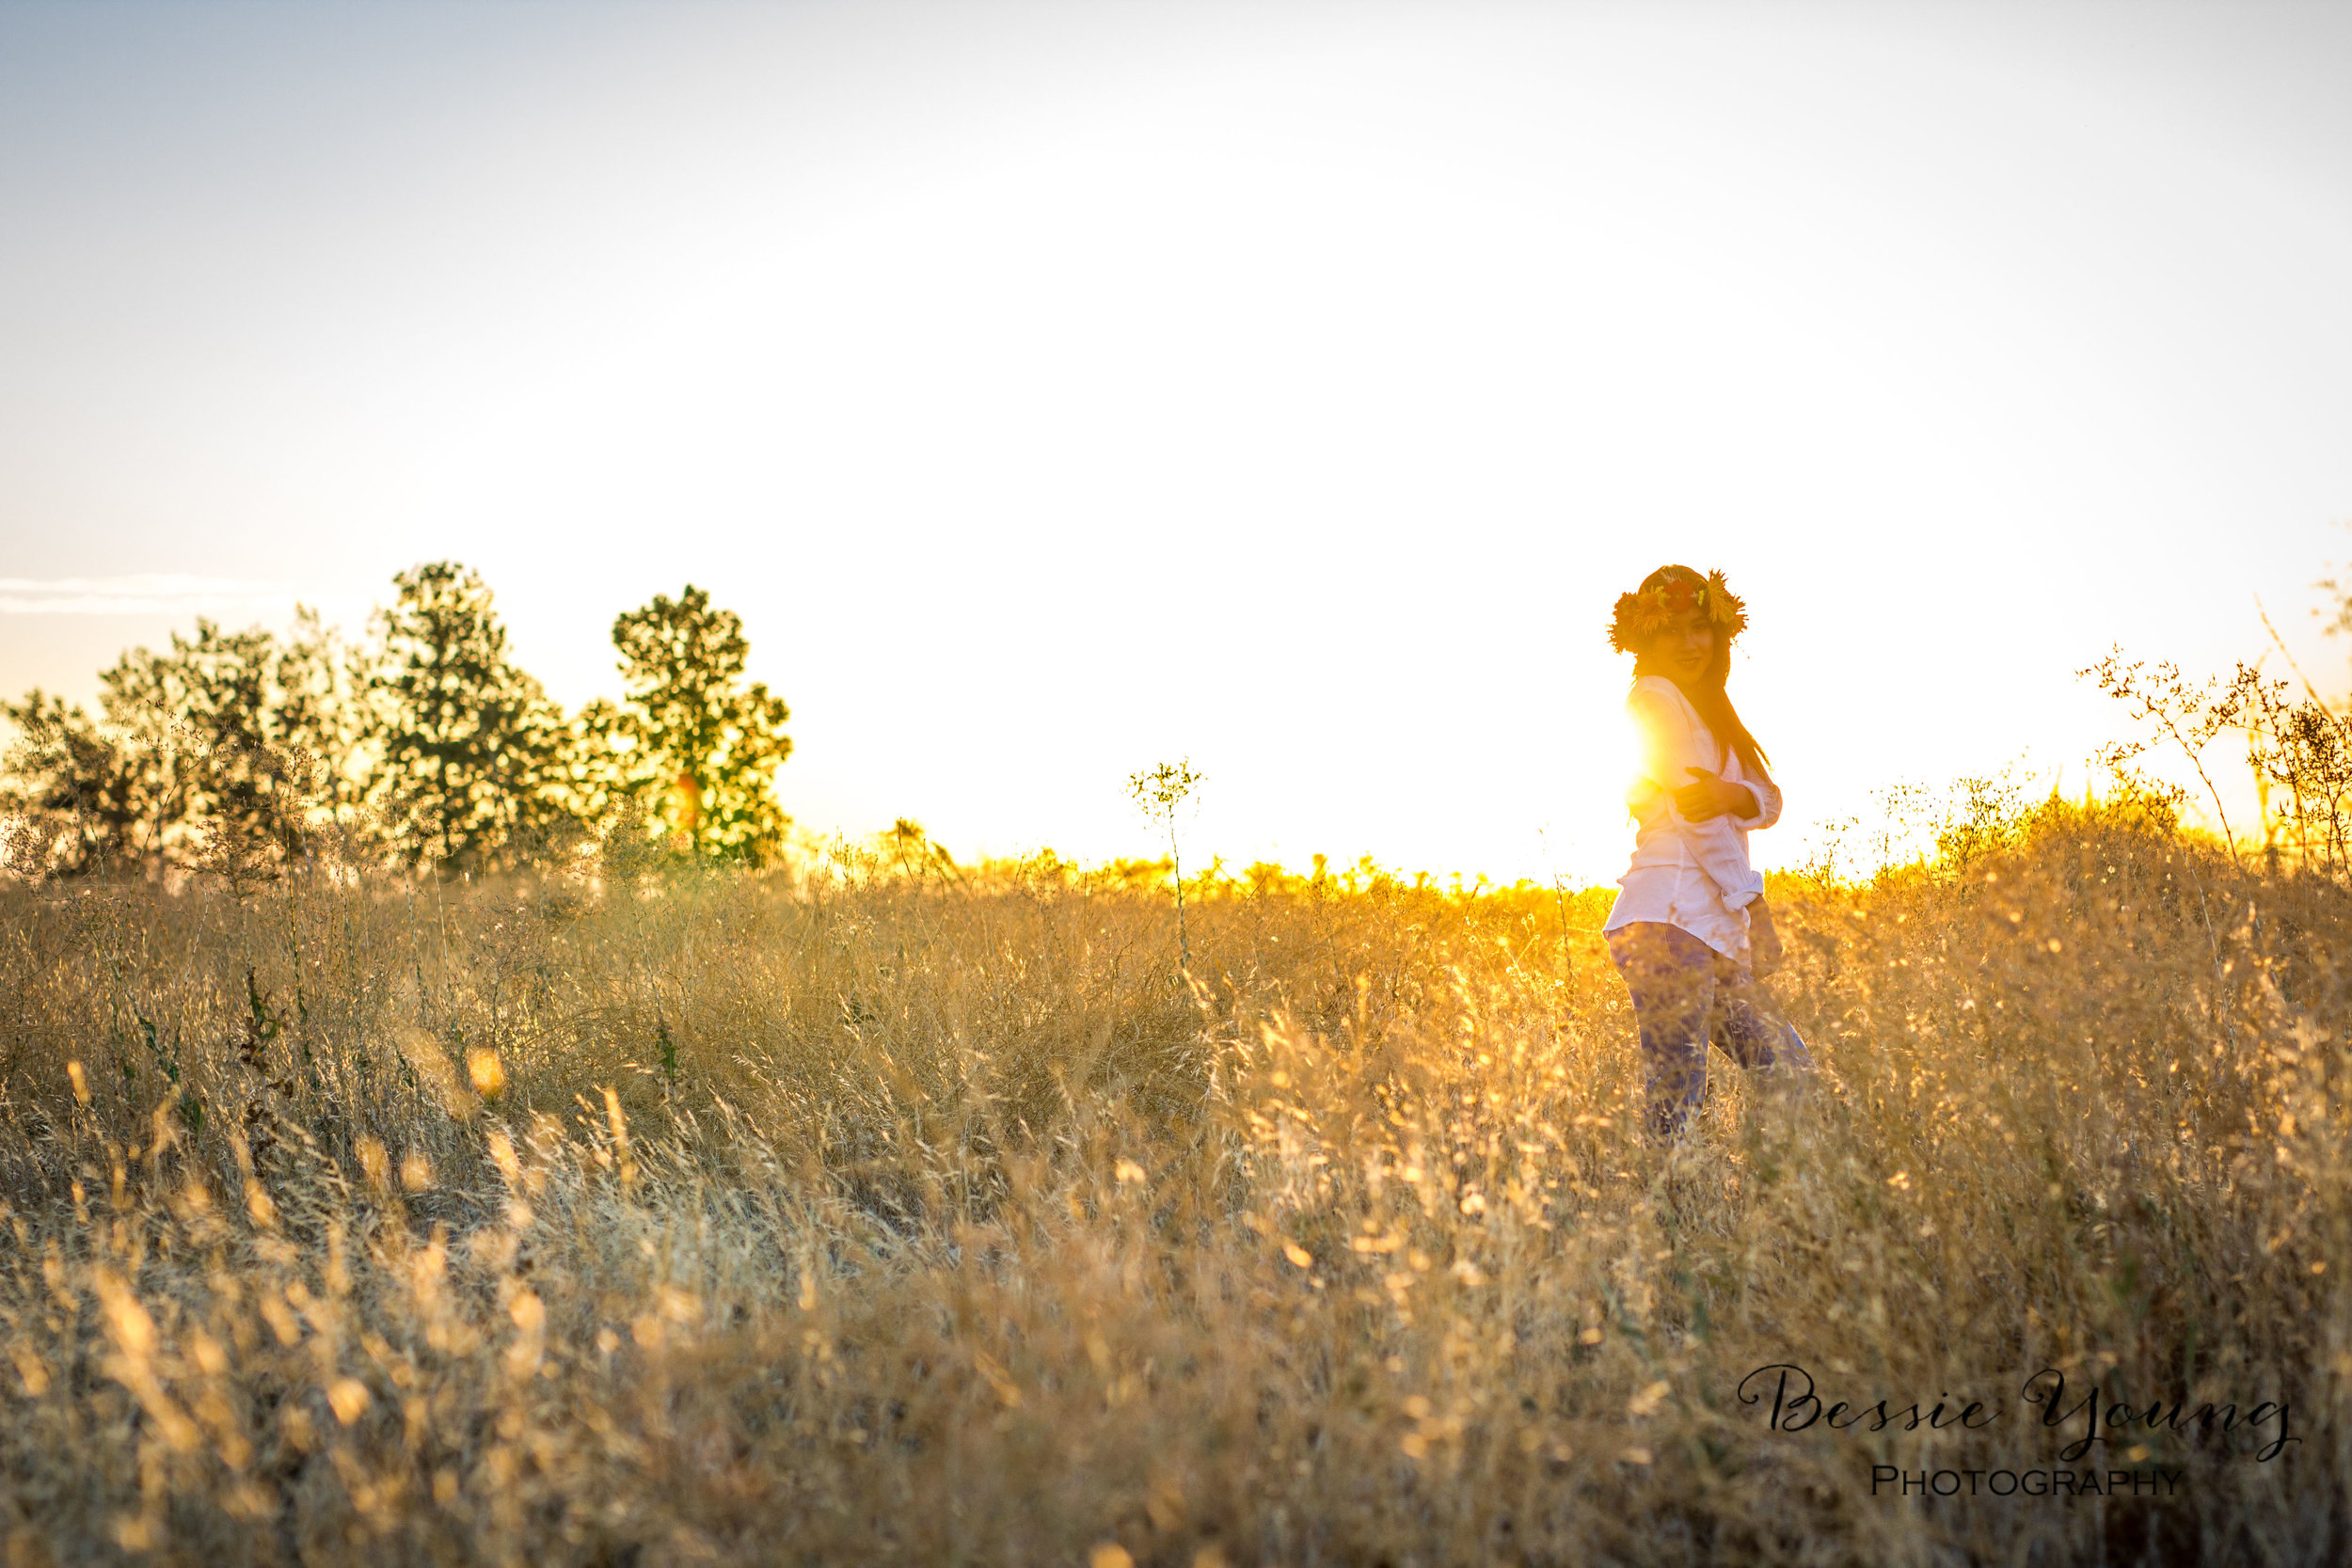 Woodward Park Portraits - Vargas - Bessie Young Photography-63.jpg